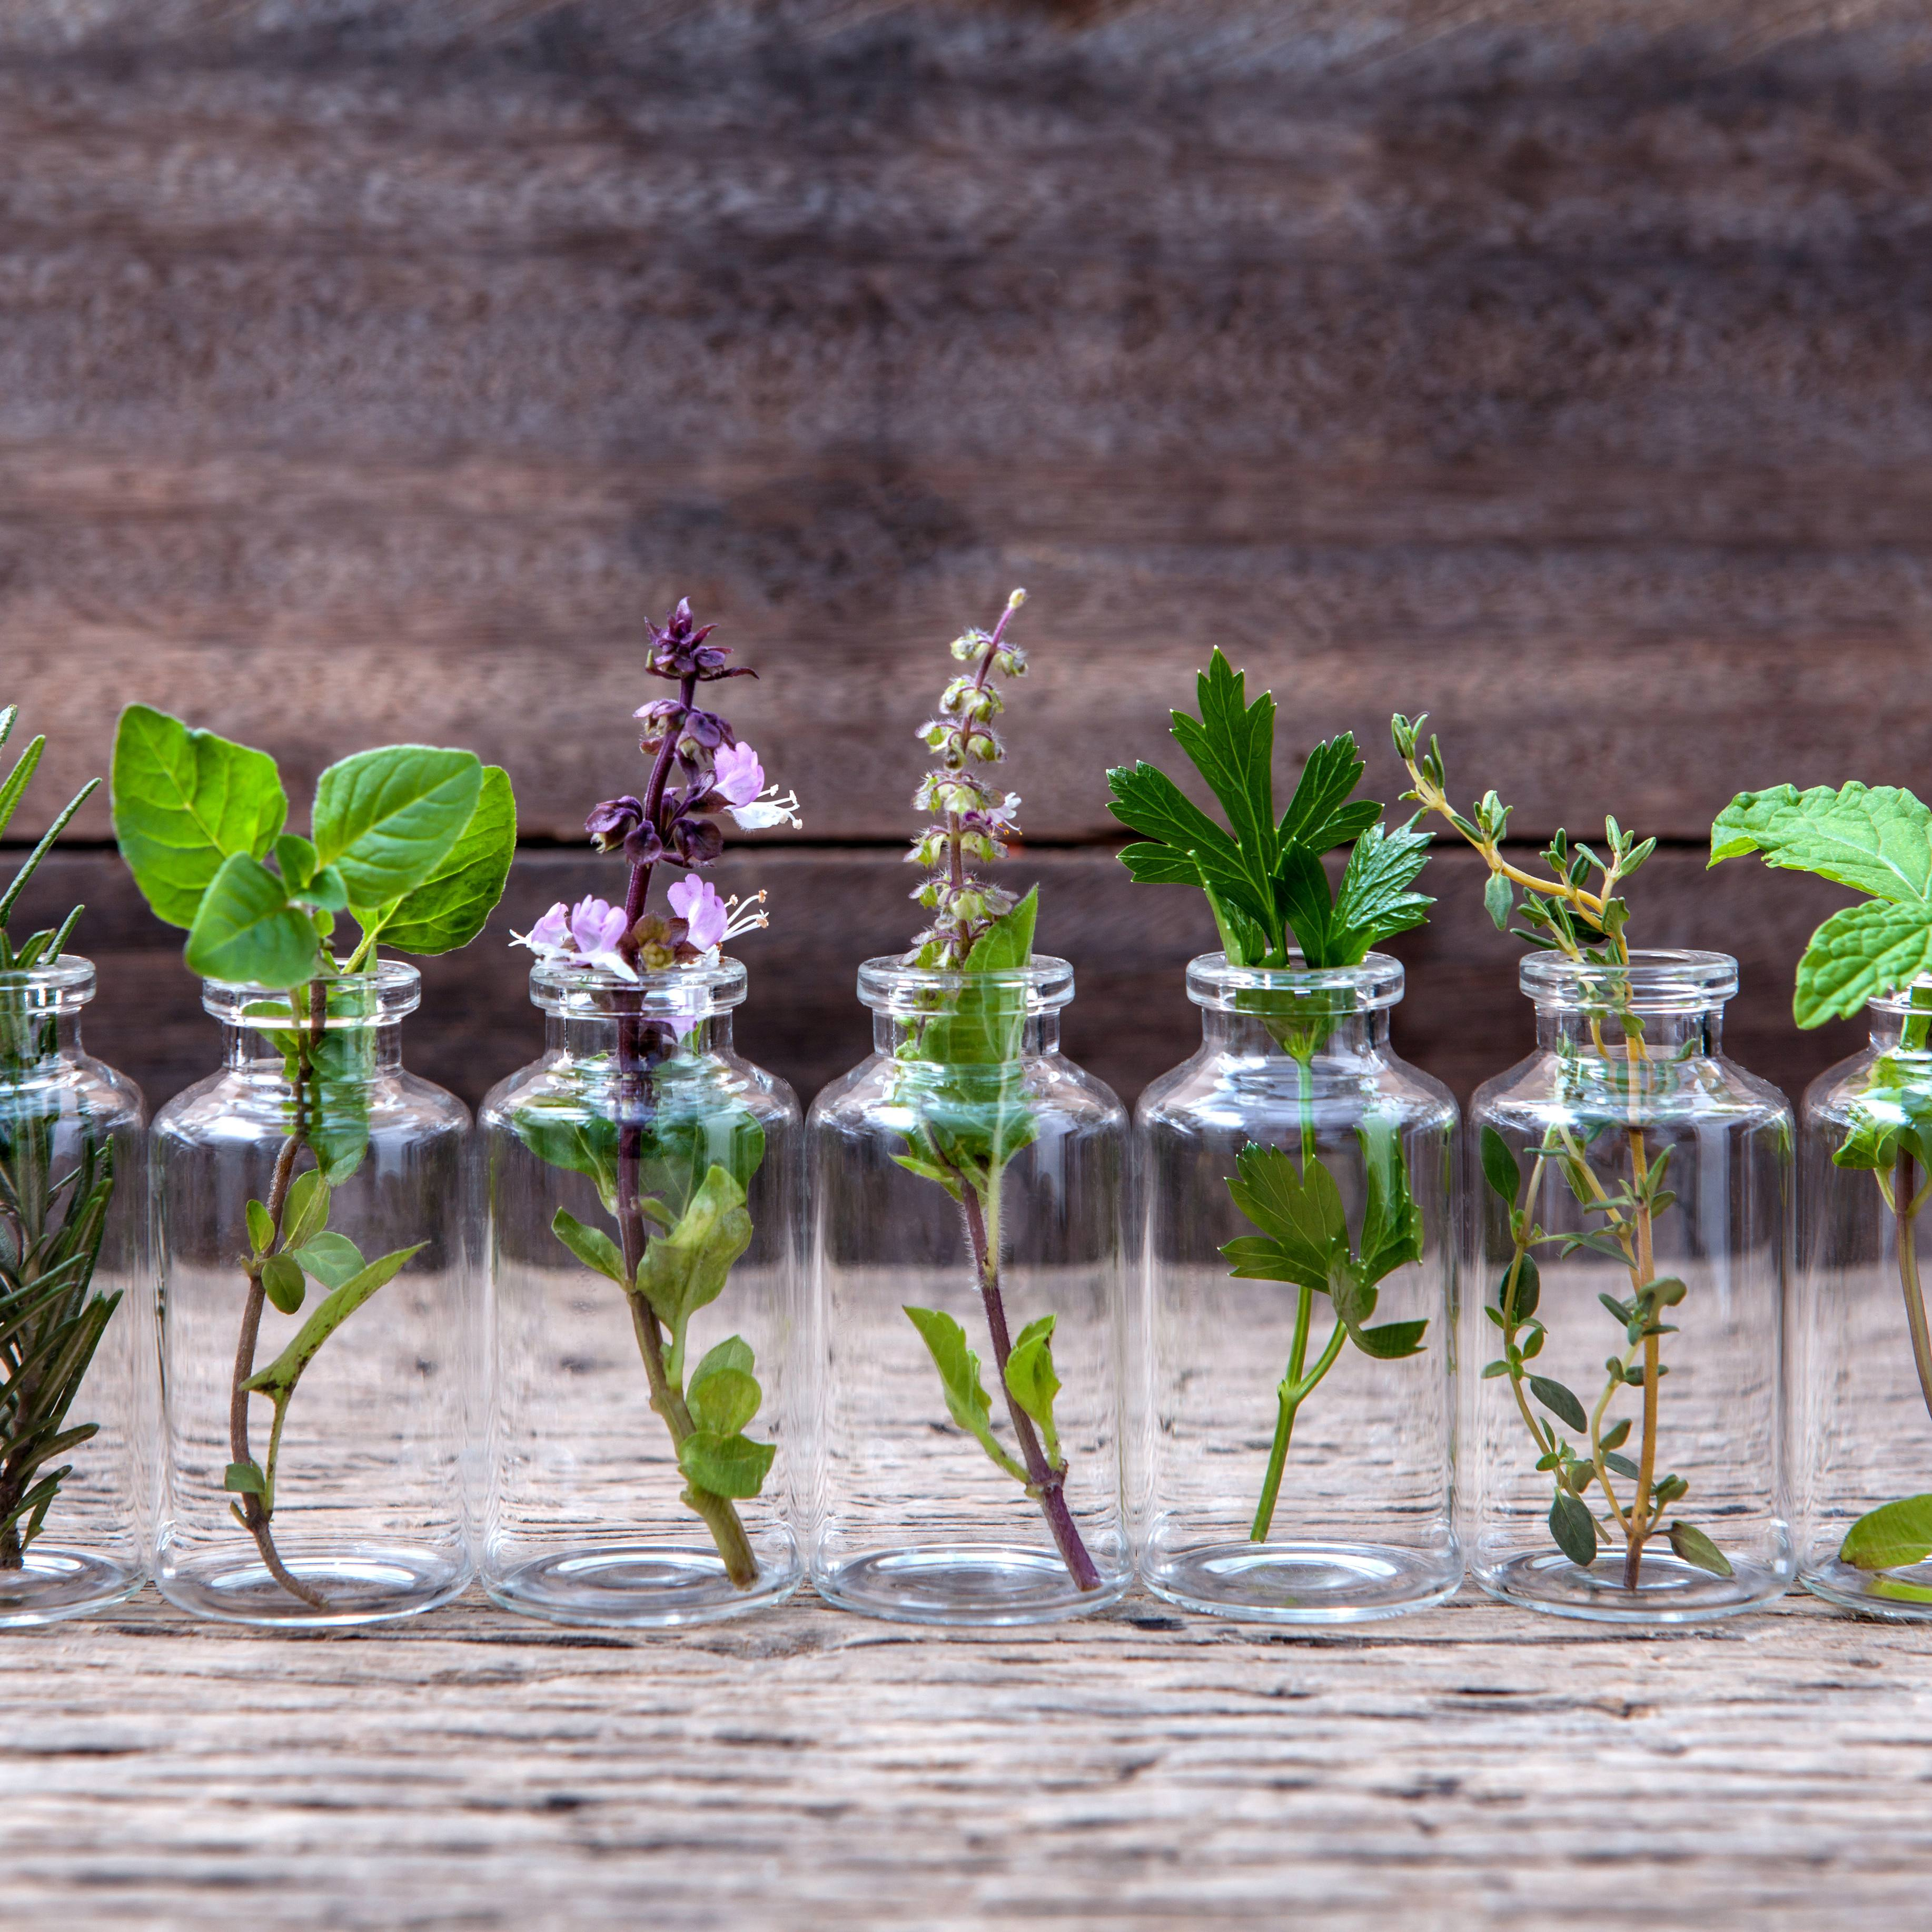 a row of small, clear glass bottles on a wooden surface, with a sprig of an herb or plant in each